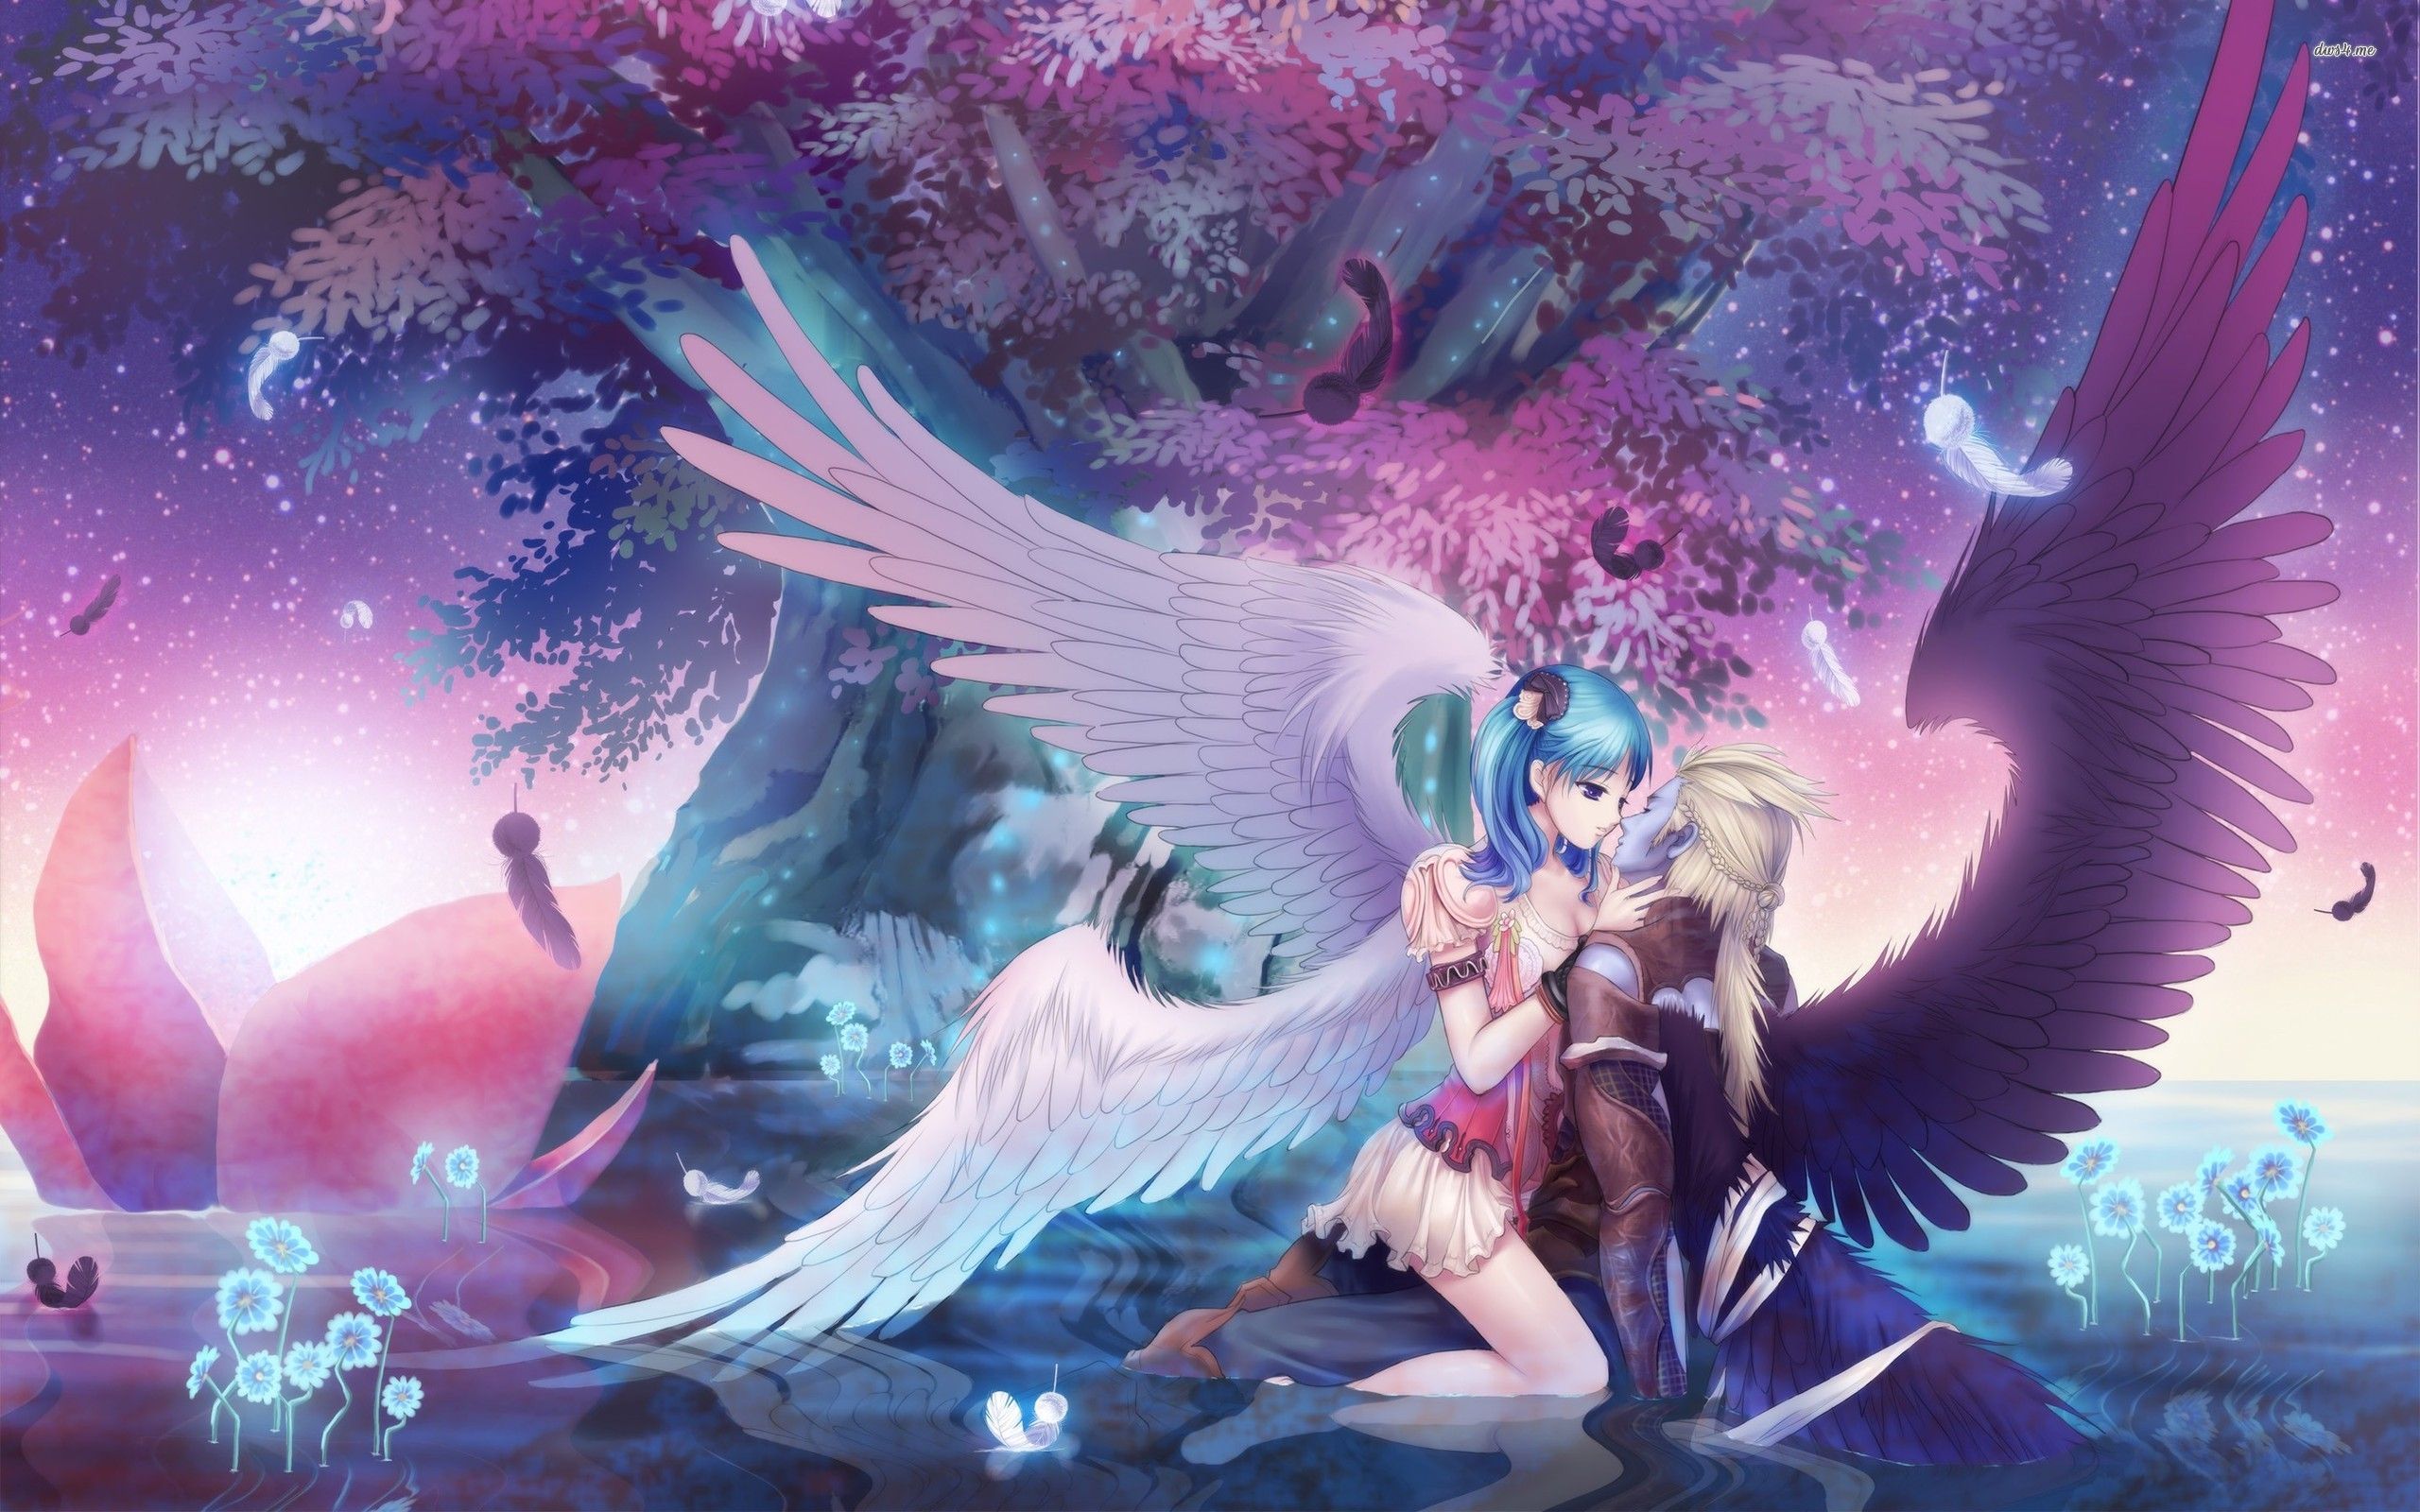 Anime angel and demon   Forbidden Love Chapter 1: The Angel and The